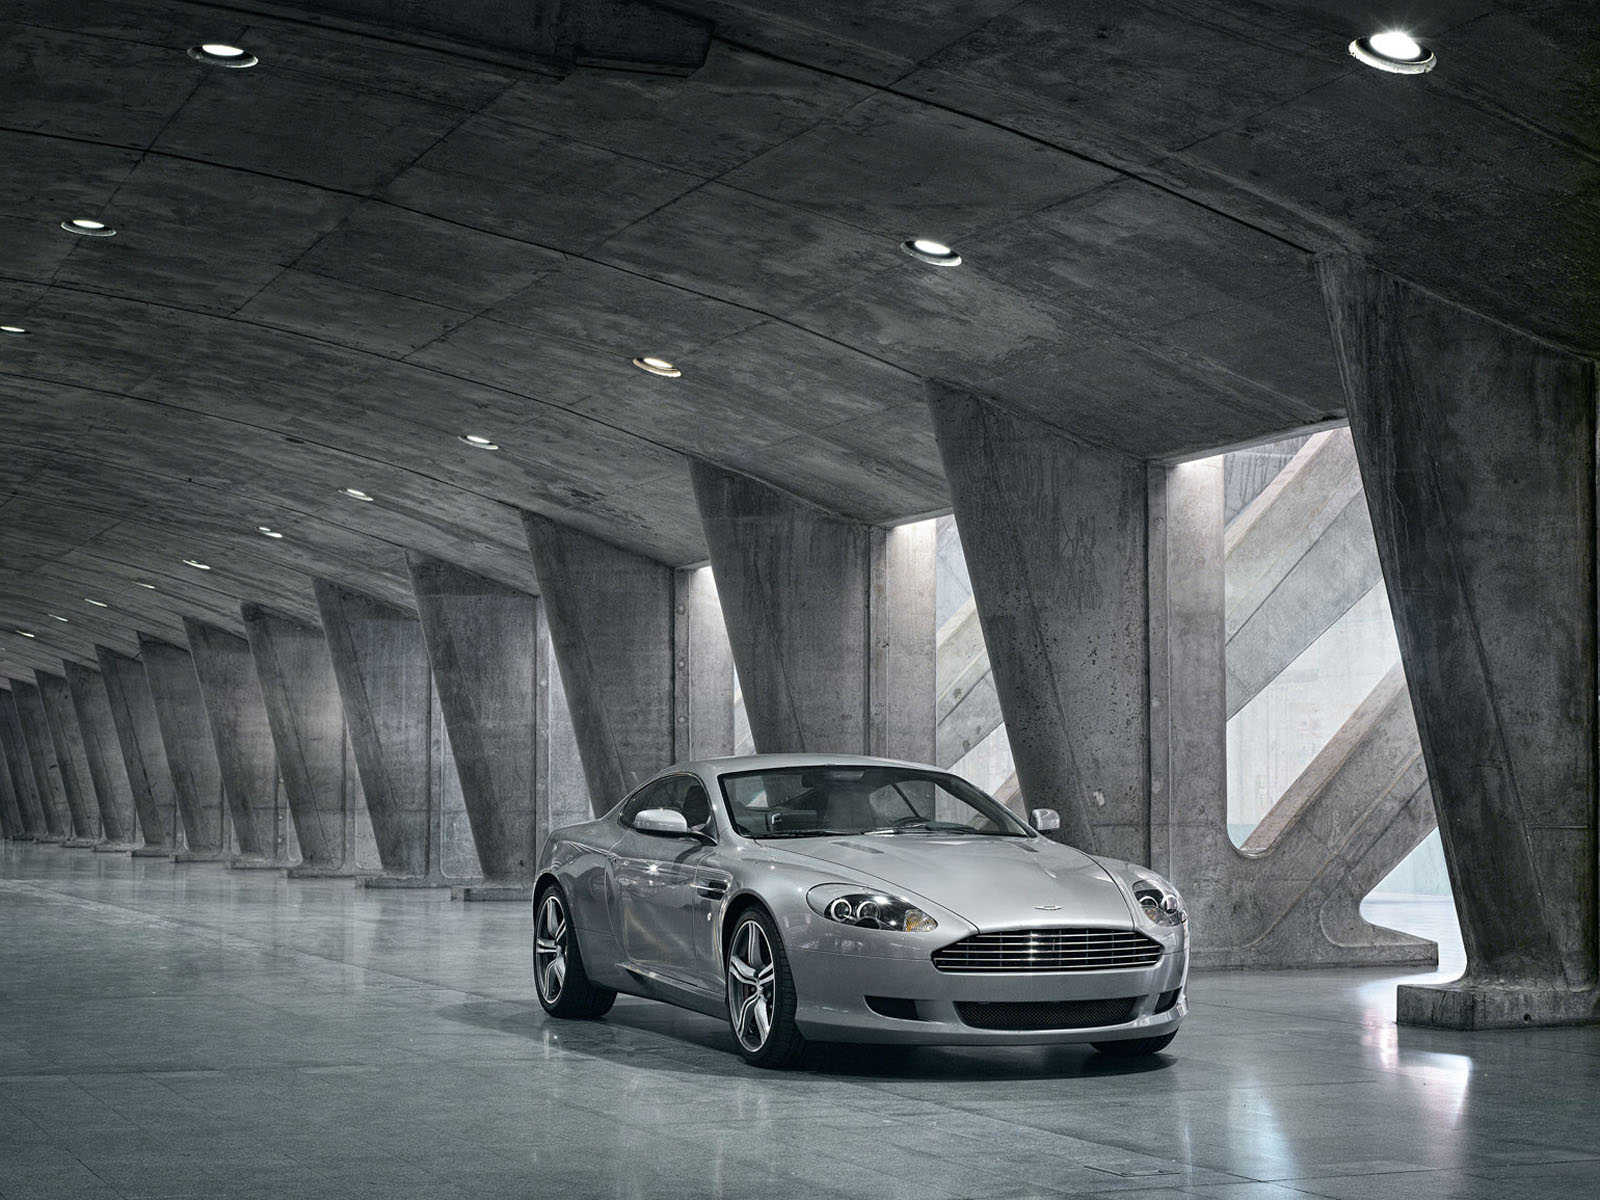 Aston martin dbs hd desktop wallpaper widescreen high 1600x1200 publicscrutiny Image collections